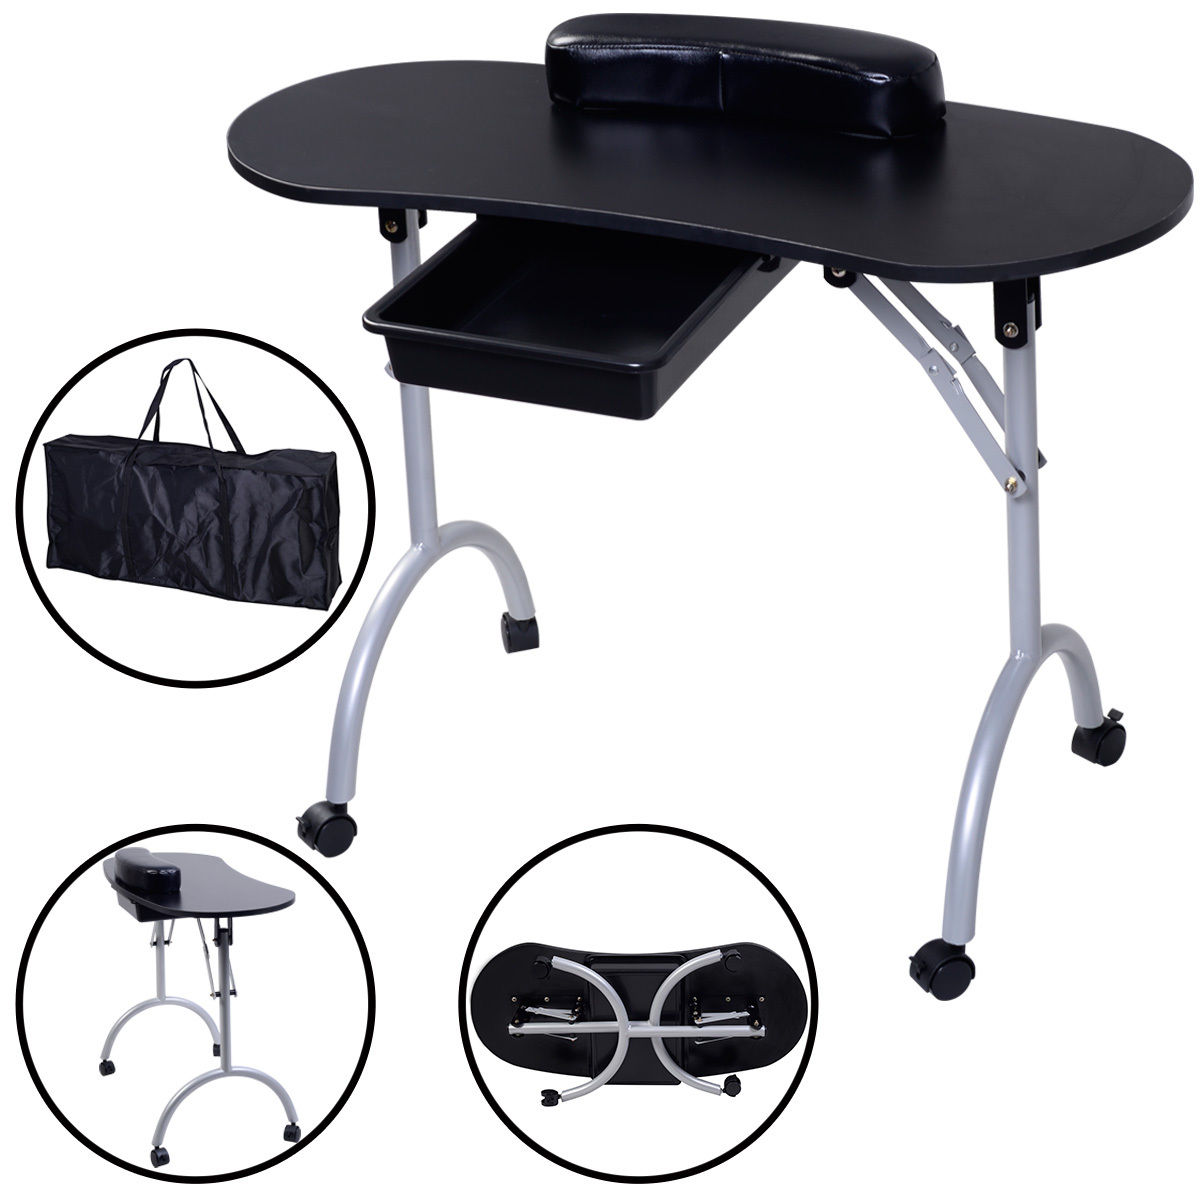 Costway Portable Manicure Nail Table Station Desk Spa Beauty Salon Equipment Black